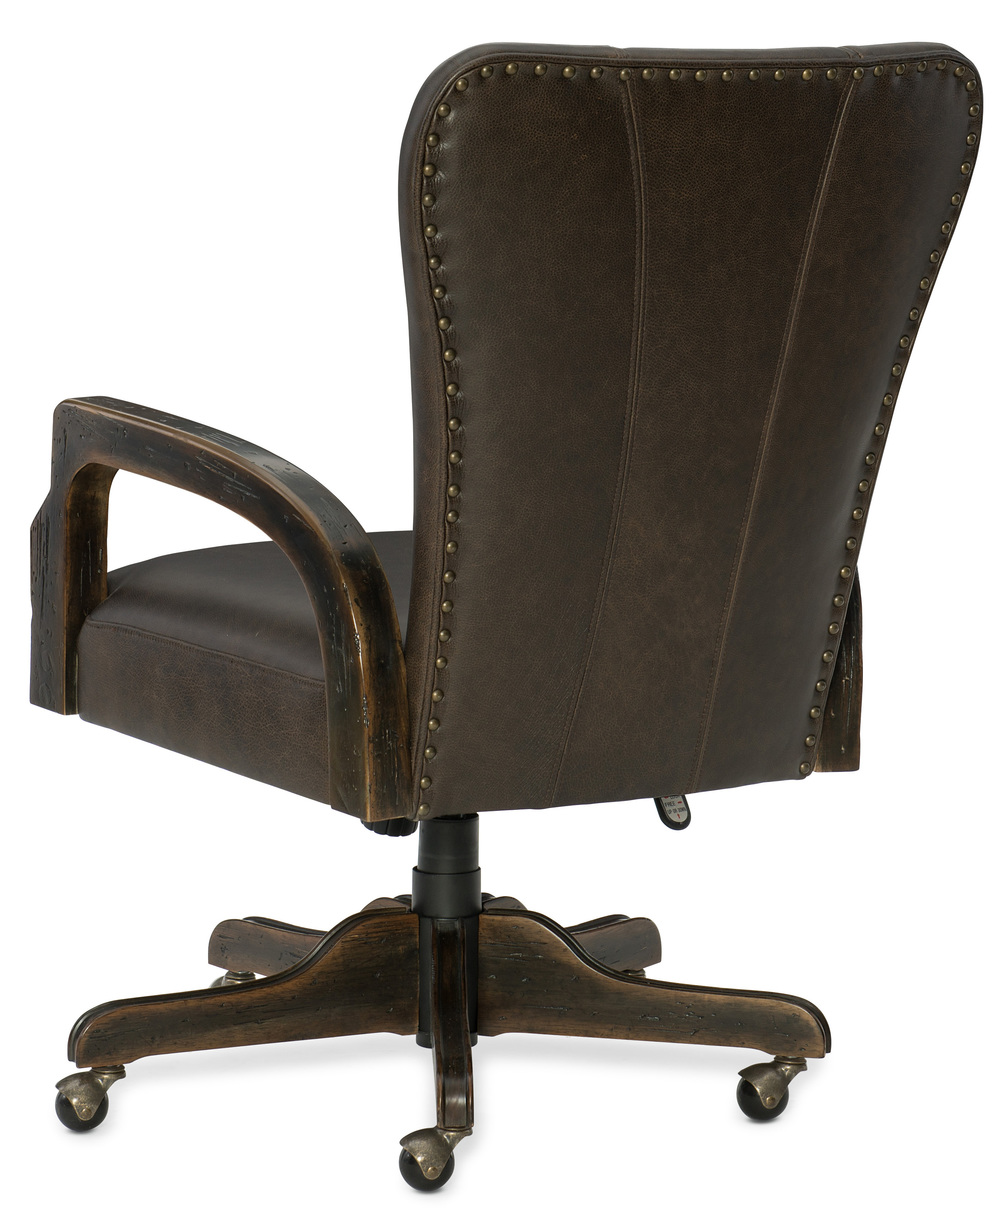 Hooker Furniture - Desk Chair